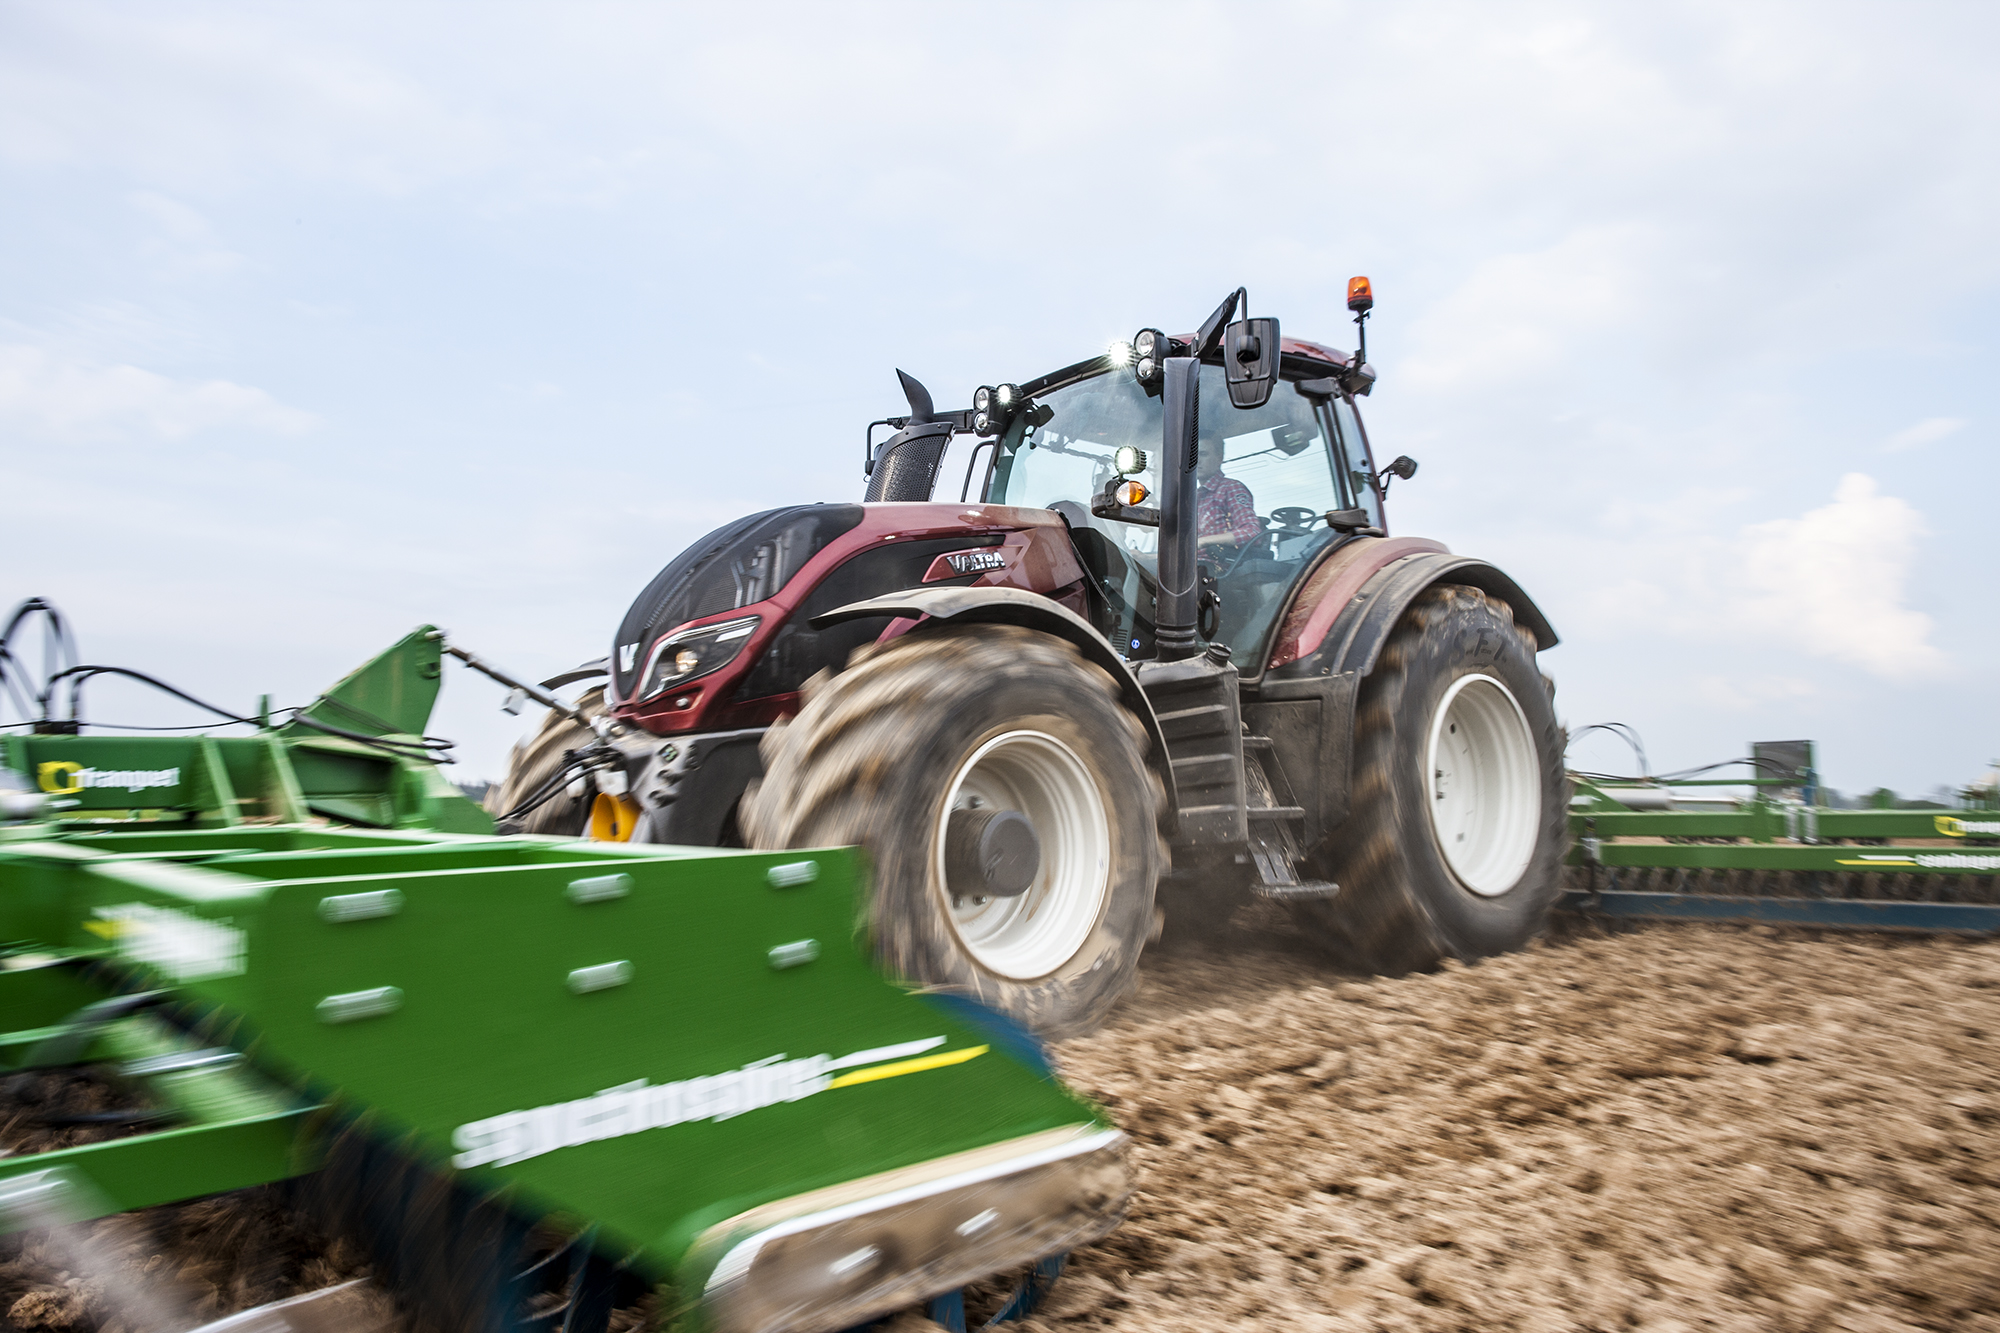 valtra t4 series tractor working on the field